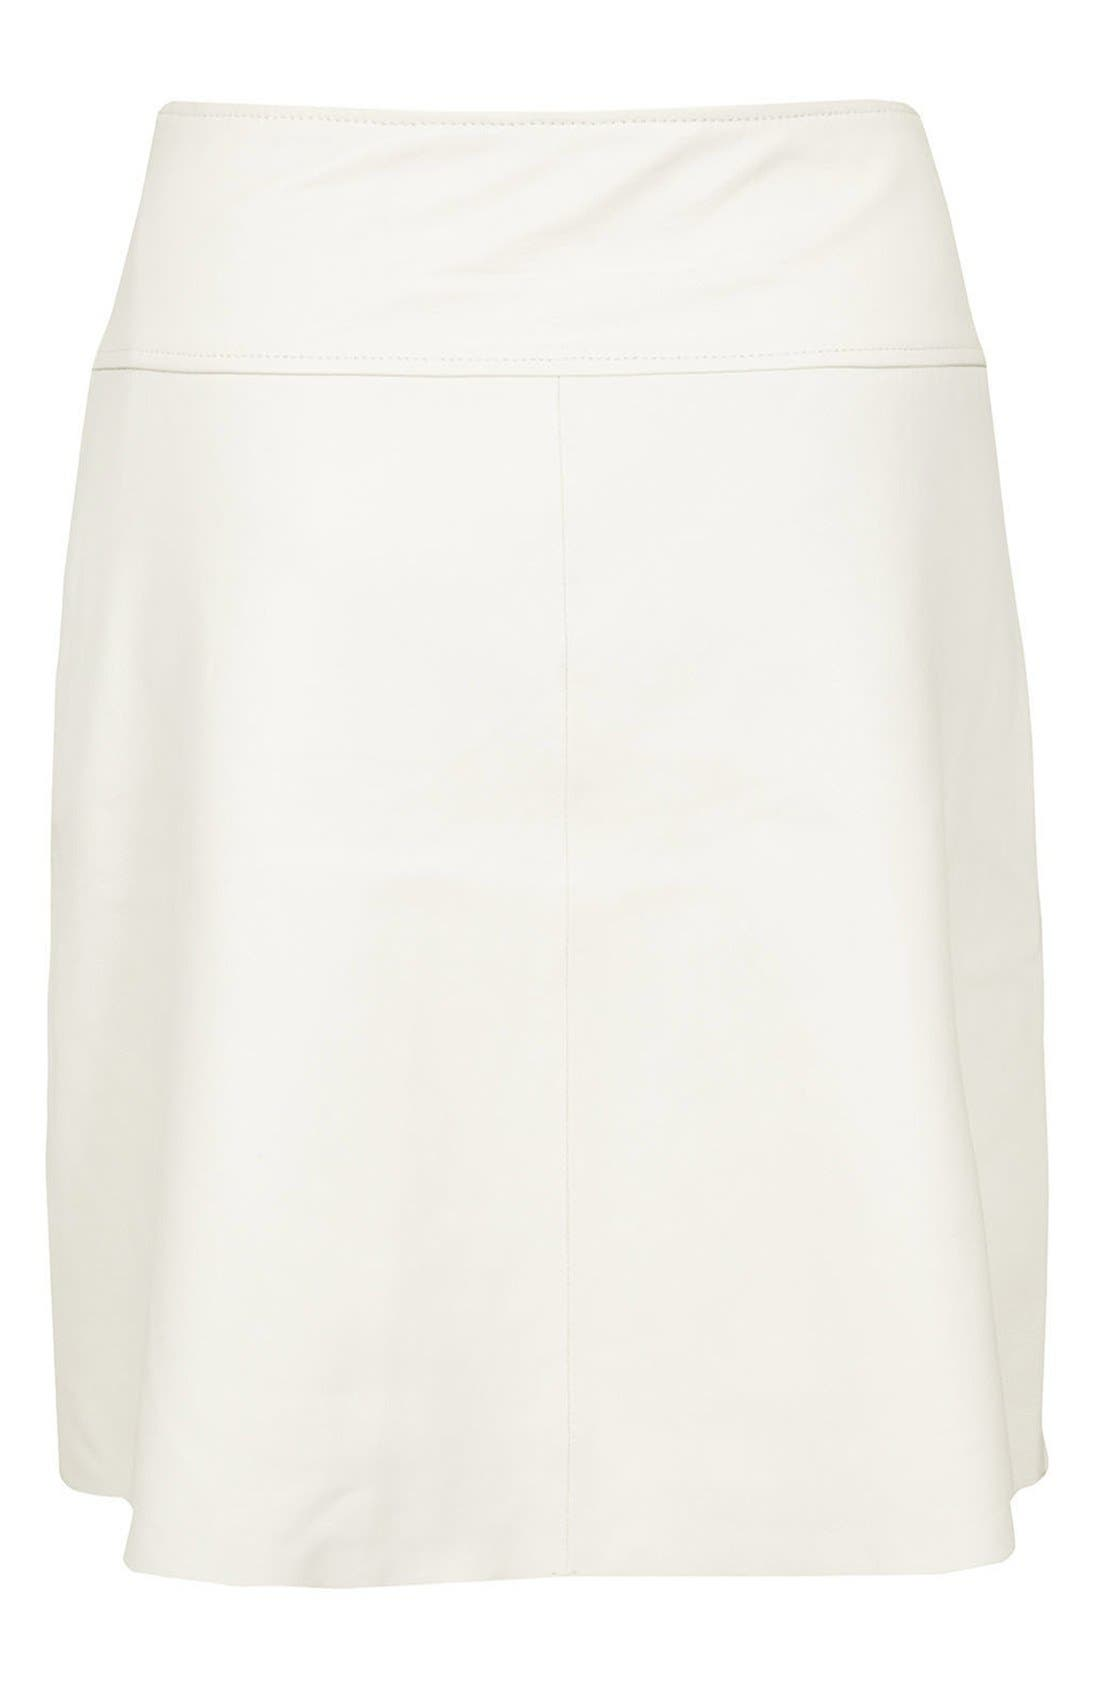 TOPSHOP, 'The Collection Starring Kate Bosworth' Leather Skirt, Alternate thumbnail 2, color, 100